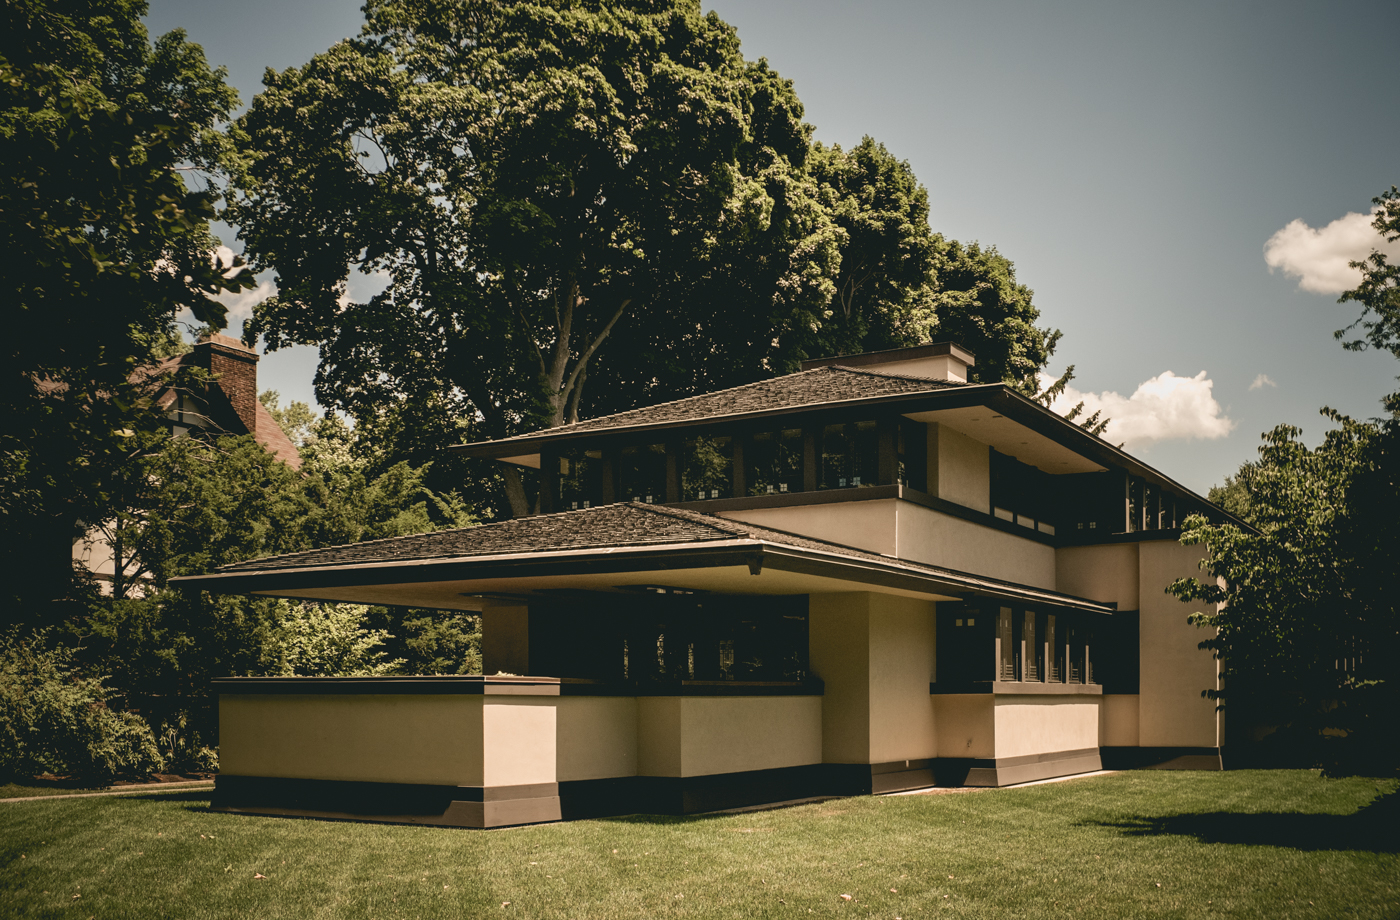 Edward E Boynton House by Frank Lloyd Wright